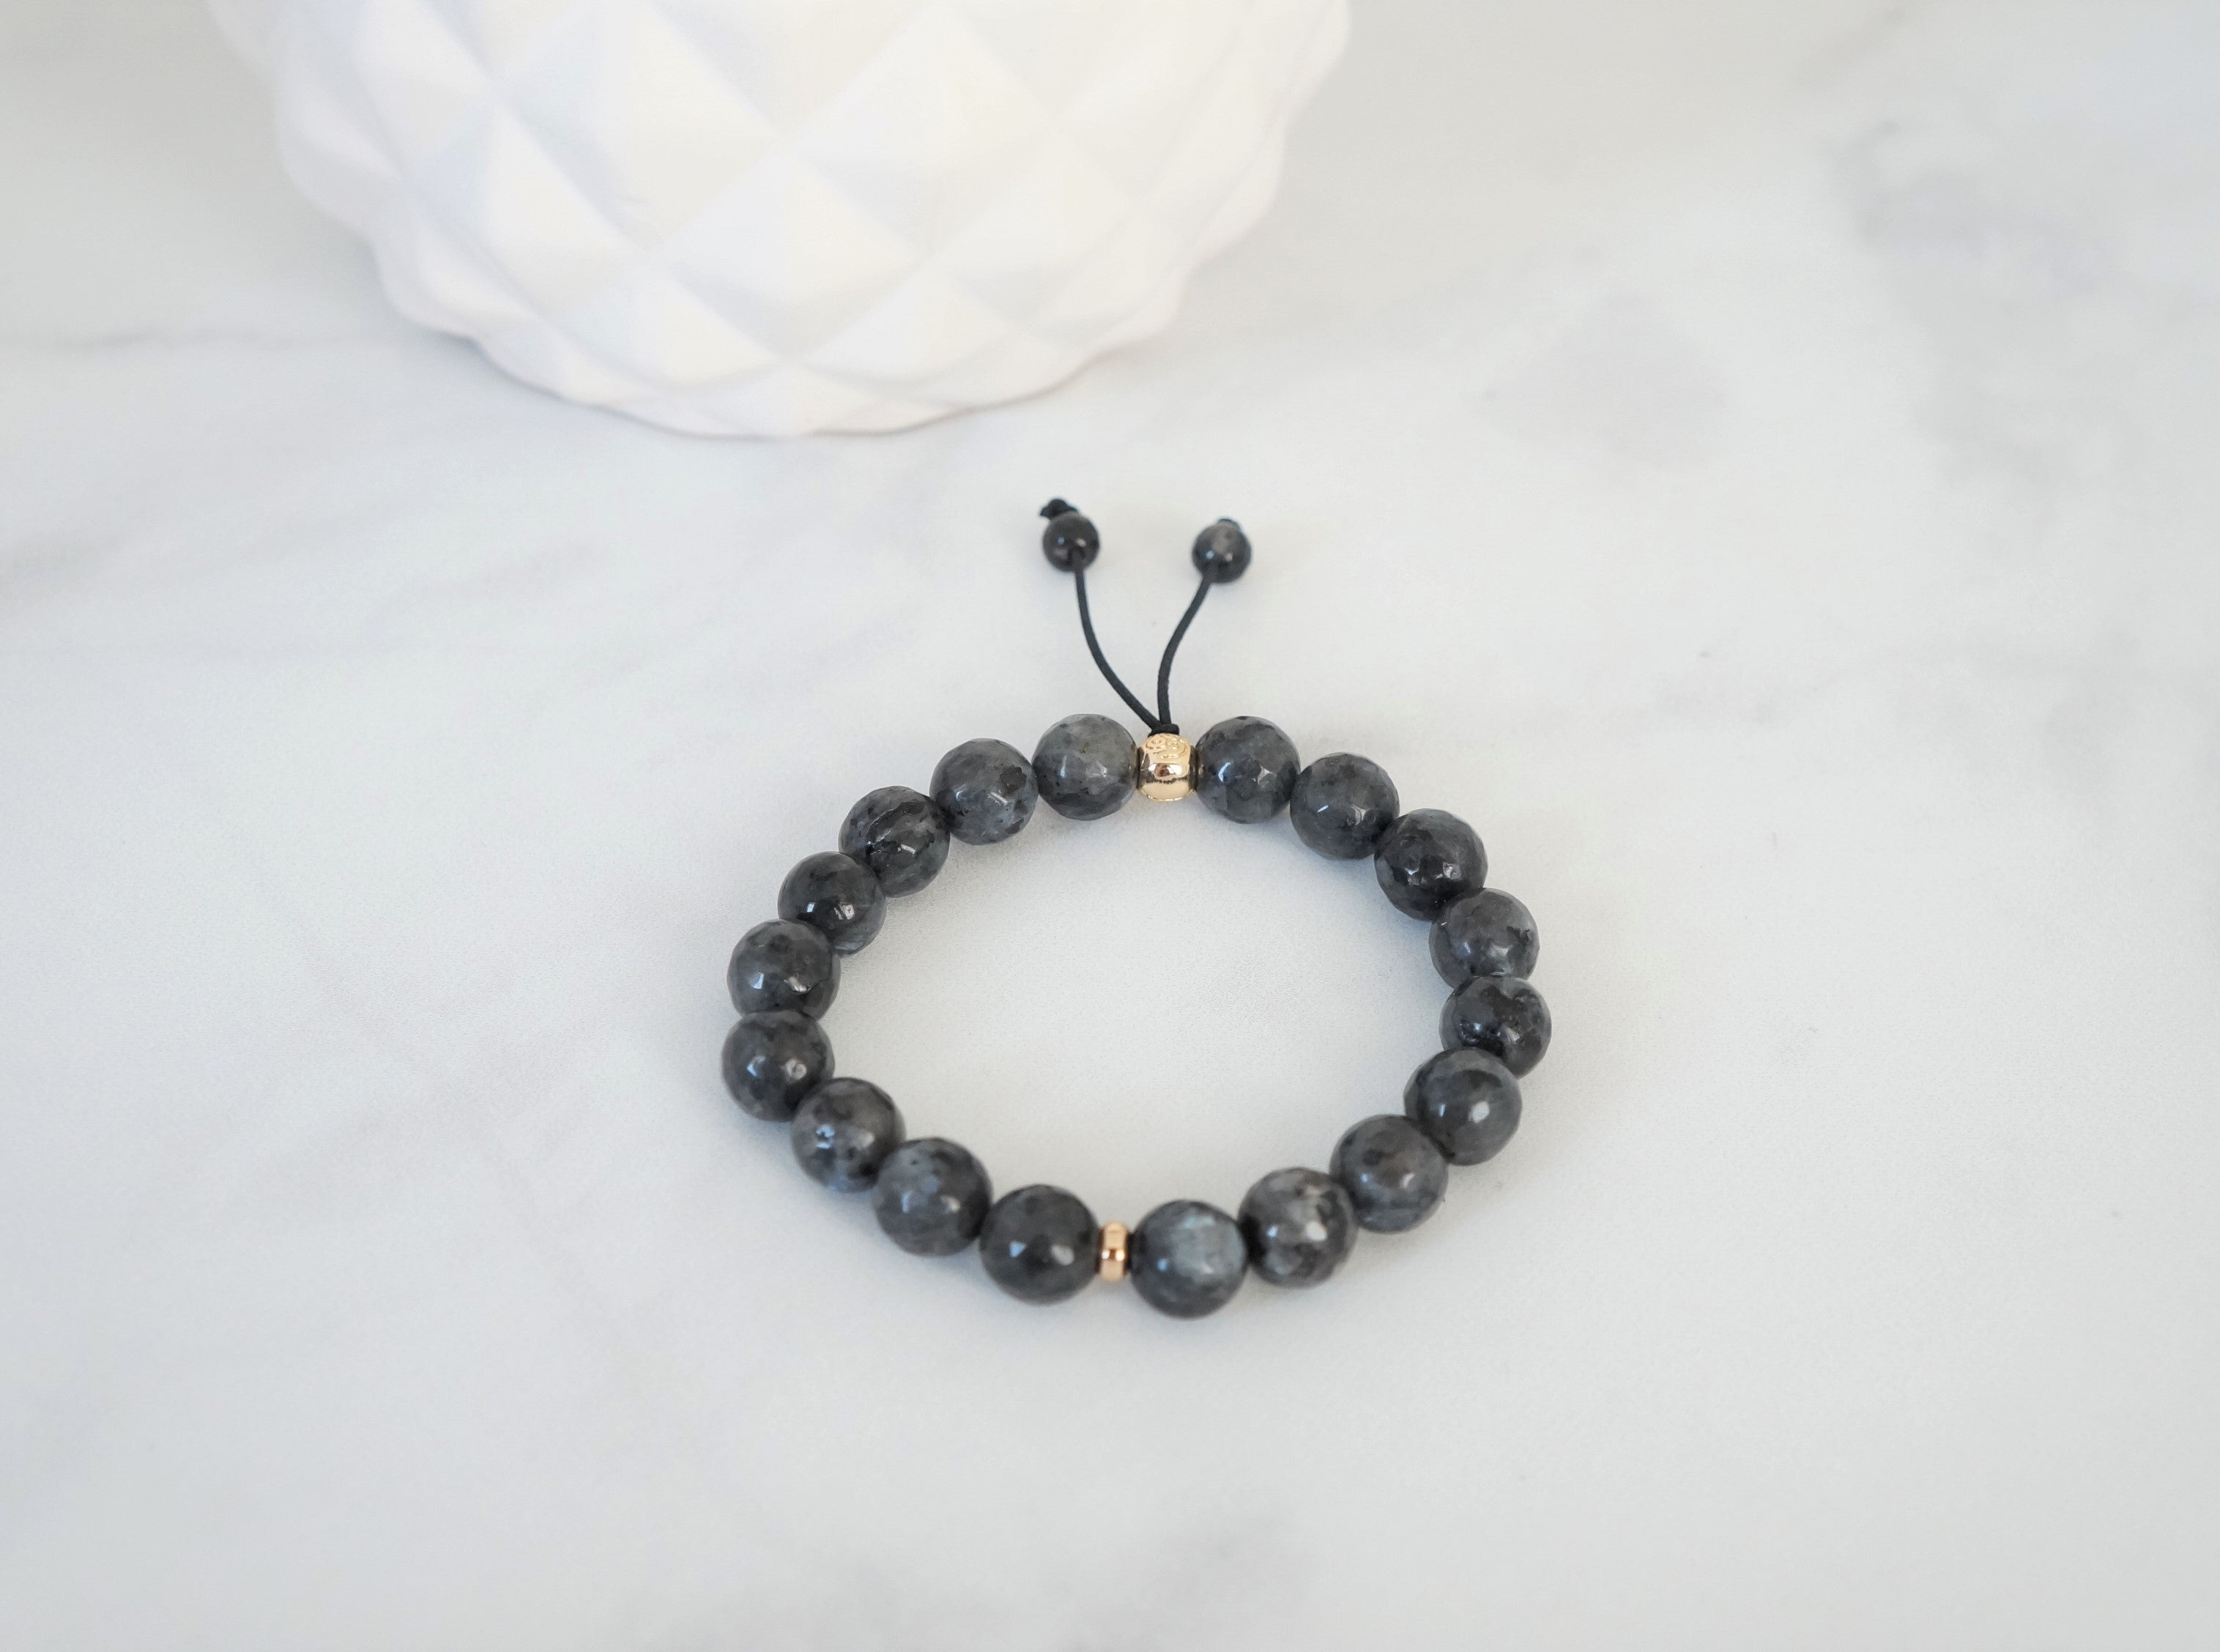 Dreamer Mala Bracelet - Carolyn Hearn Designs